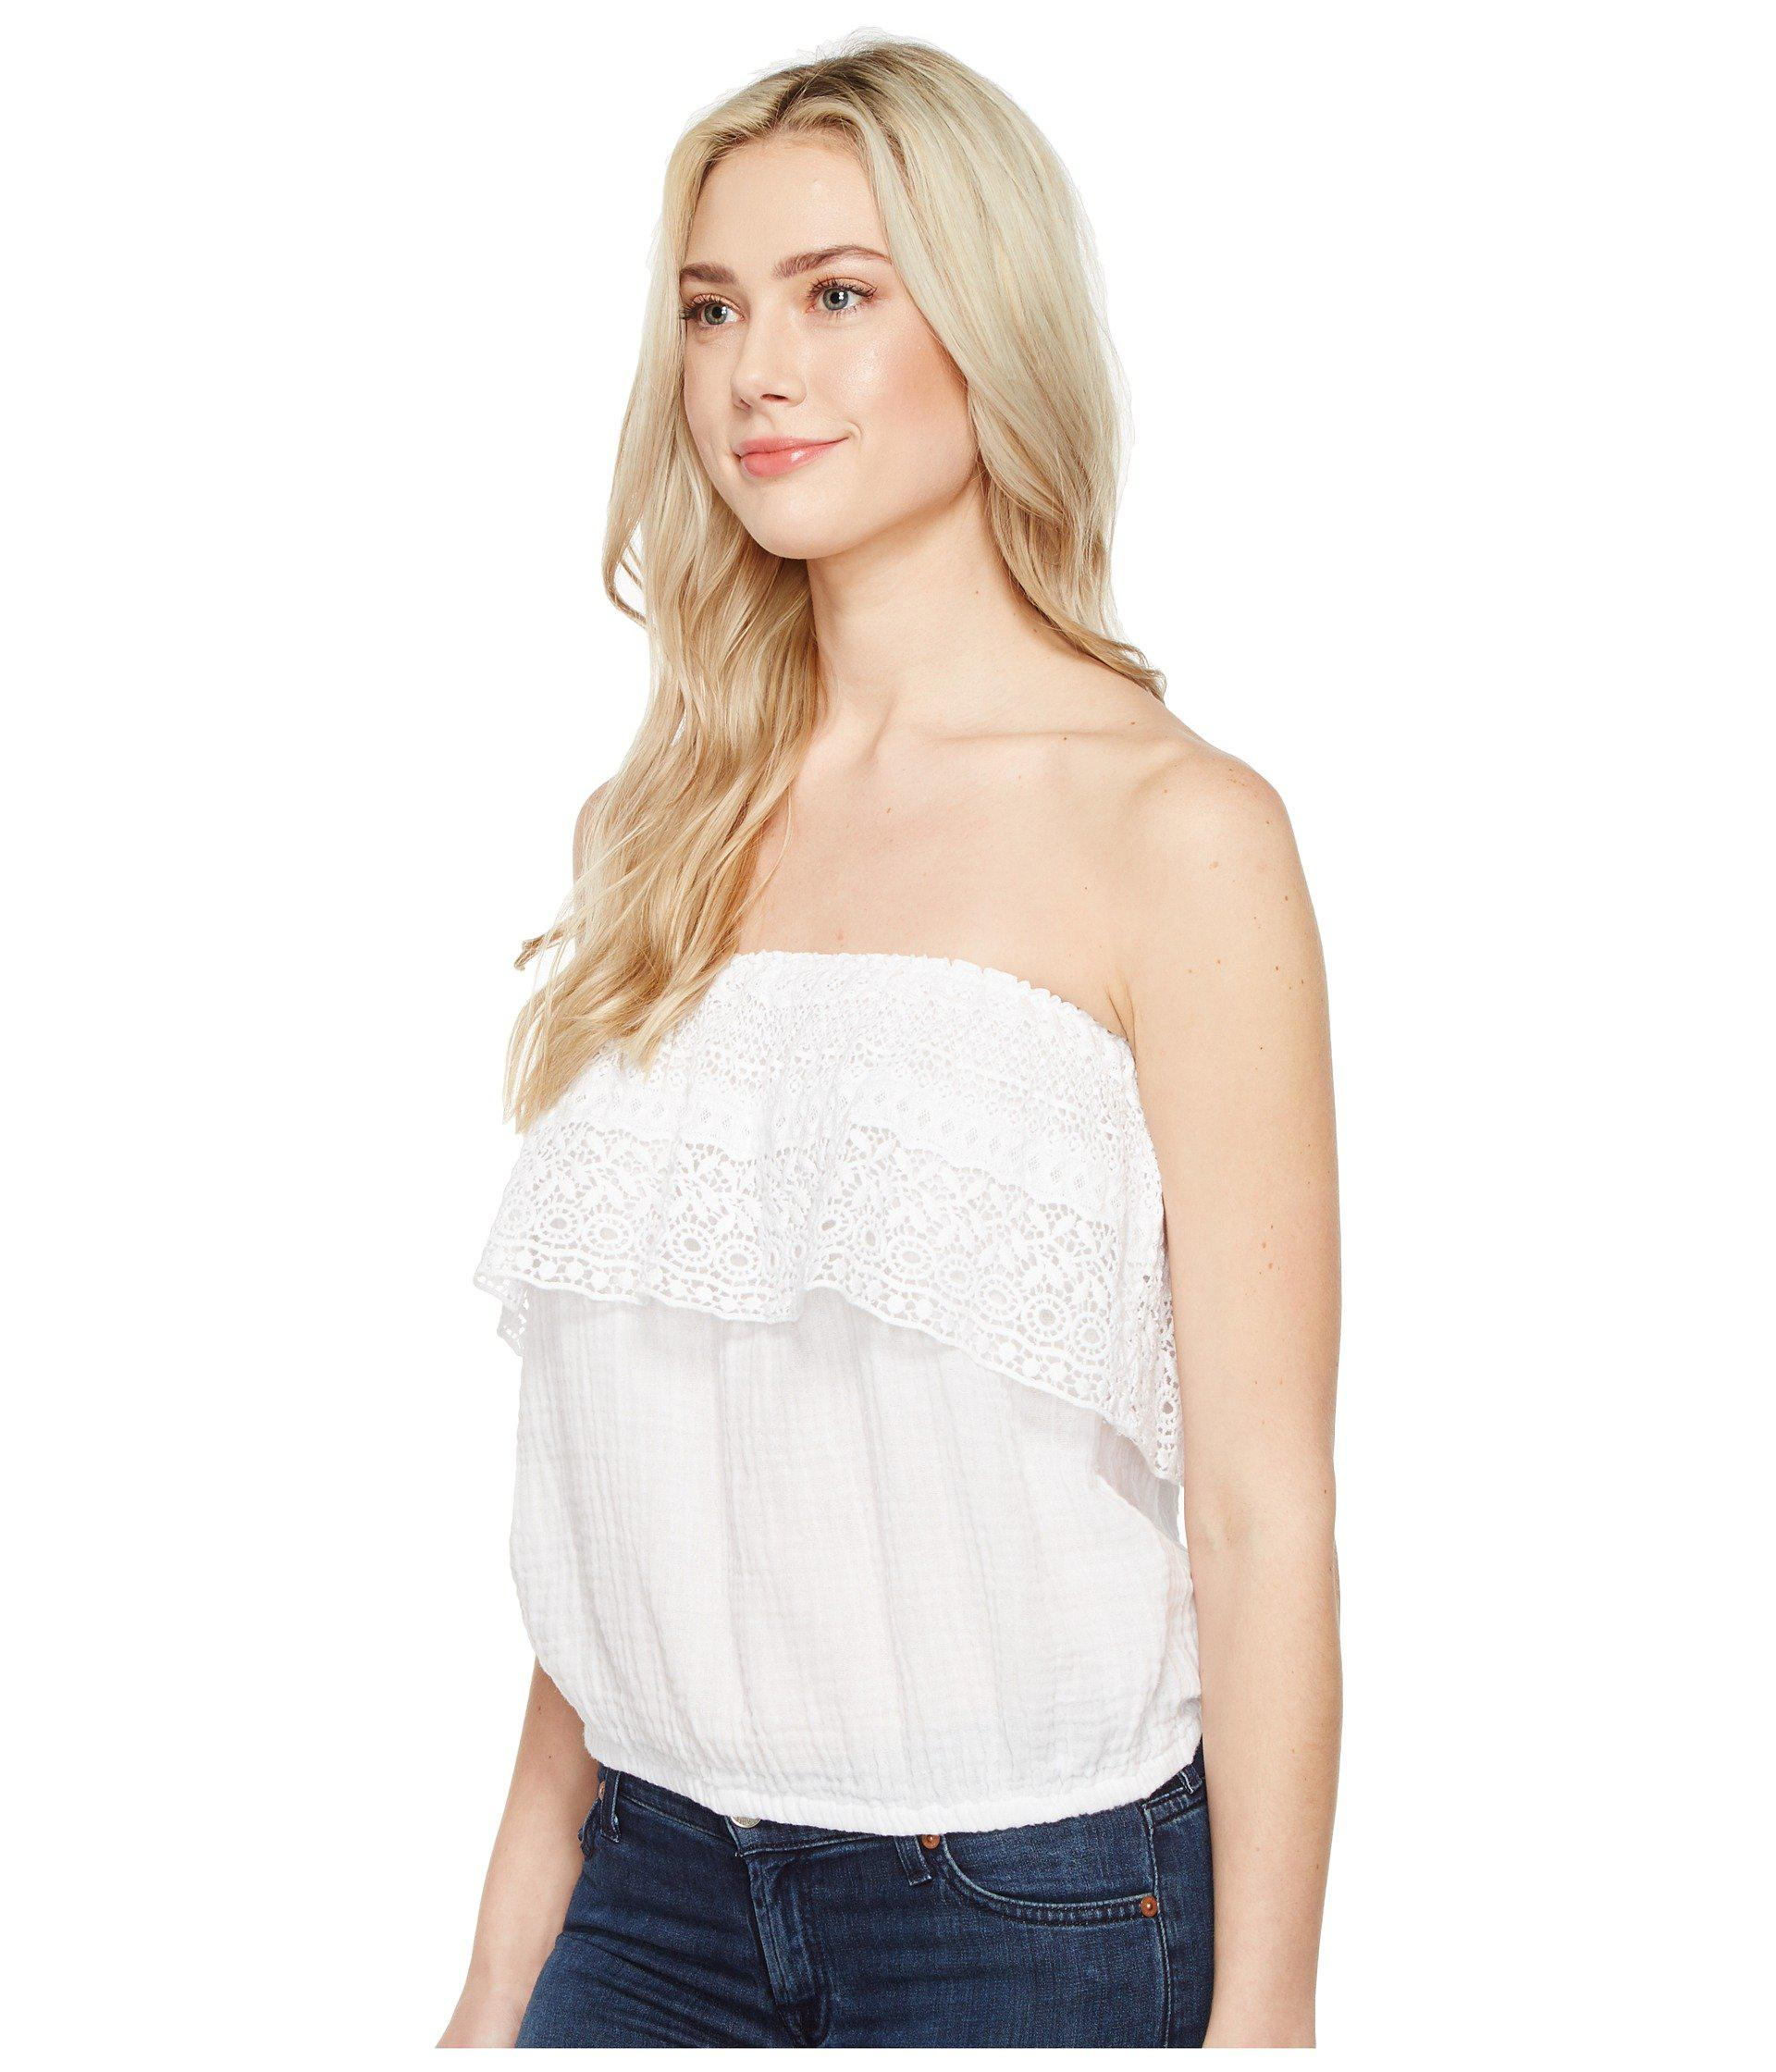 535c1eb9d58 Lyst - Michael Stars Double Gauze Tube Top W  Lace in White